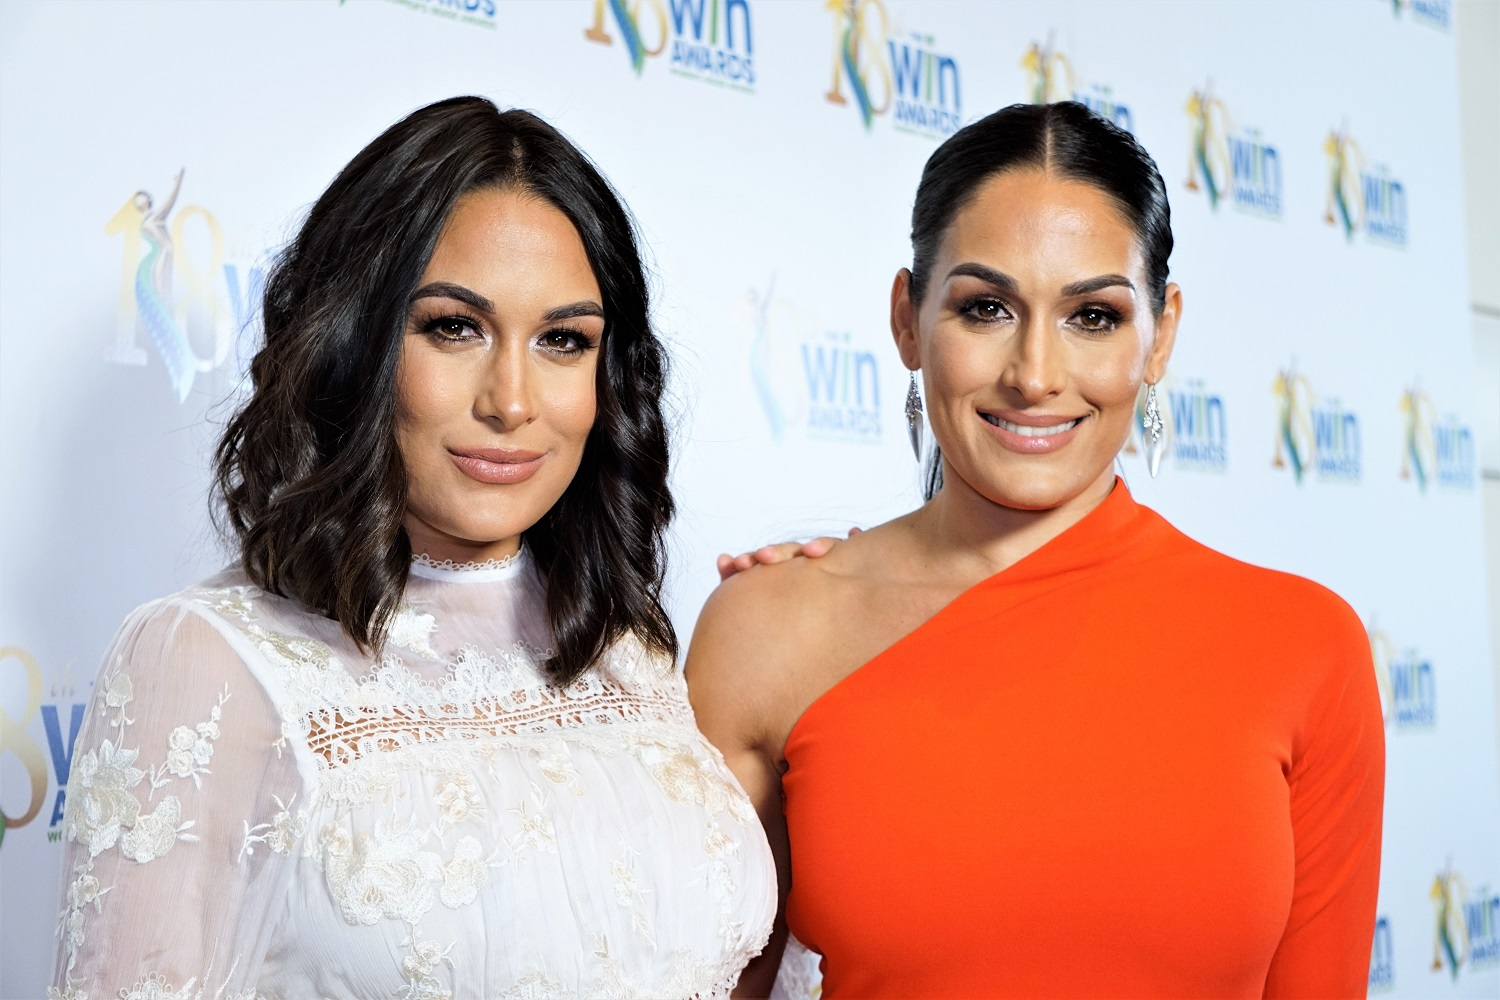 The Bella Twins, Nikki and Brie